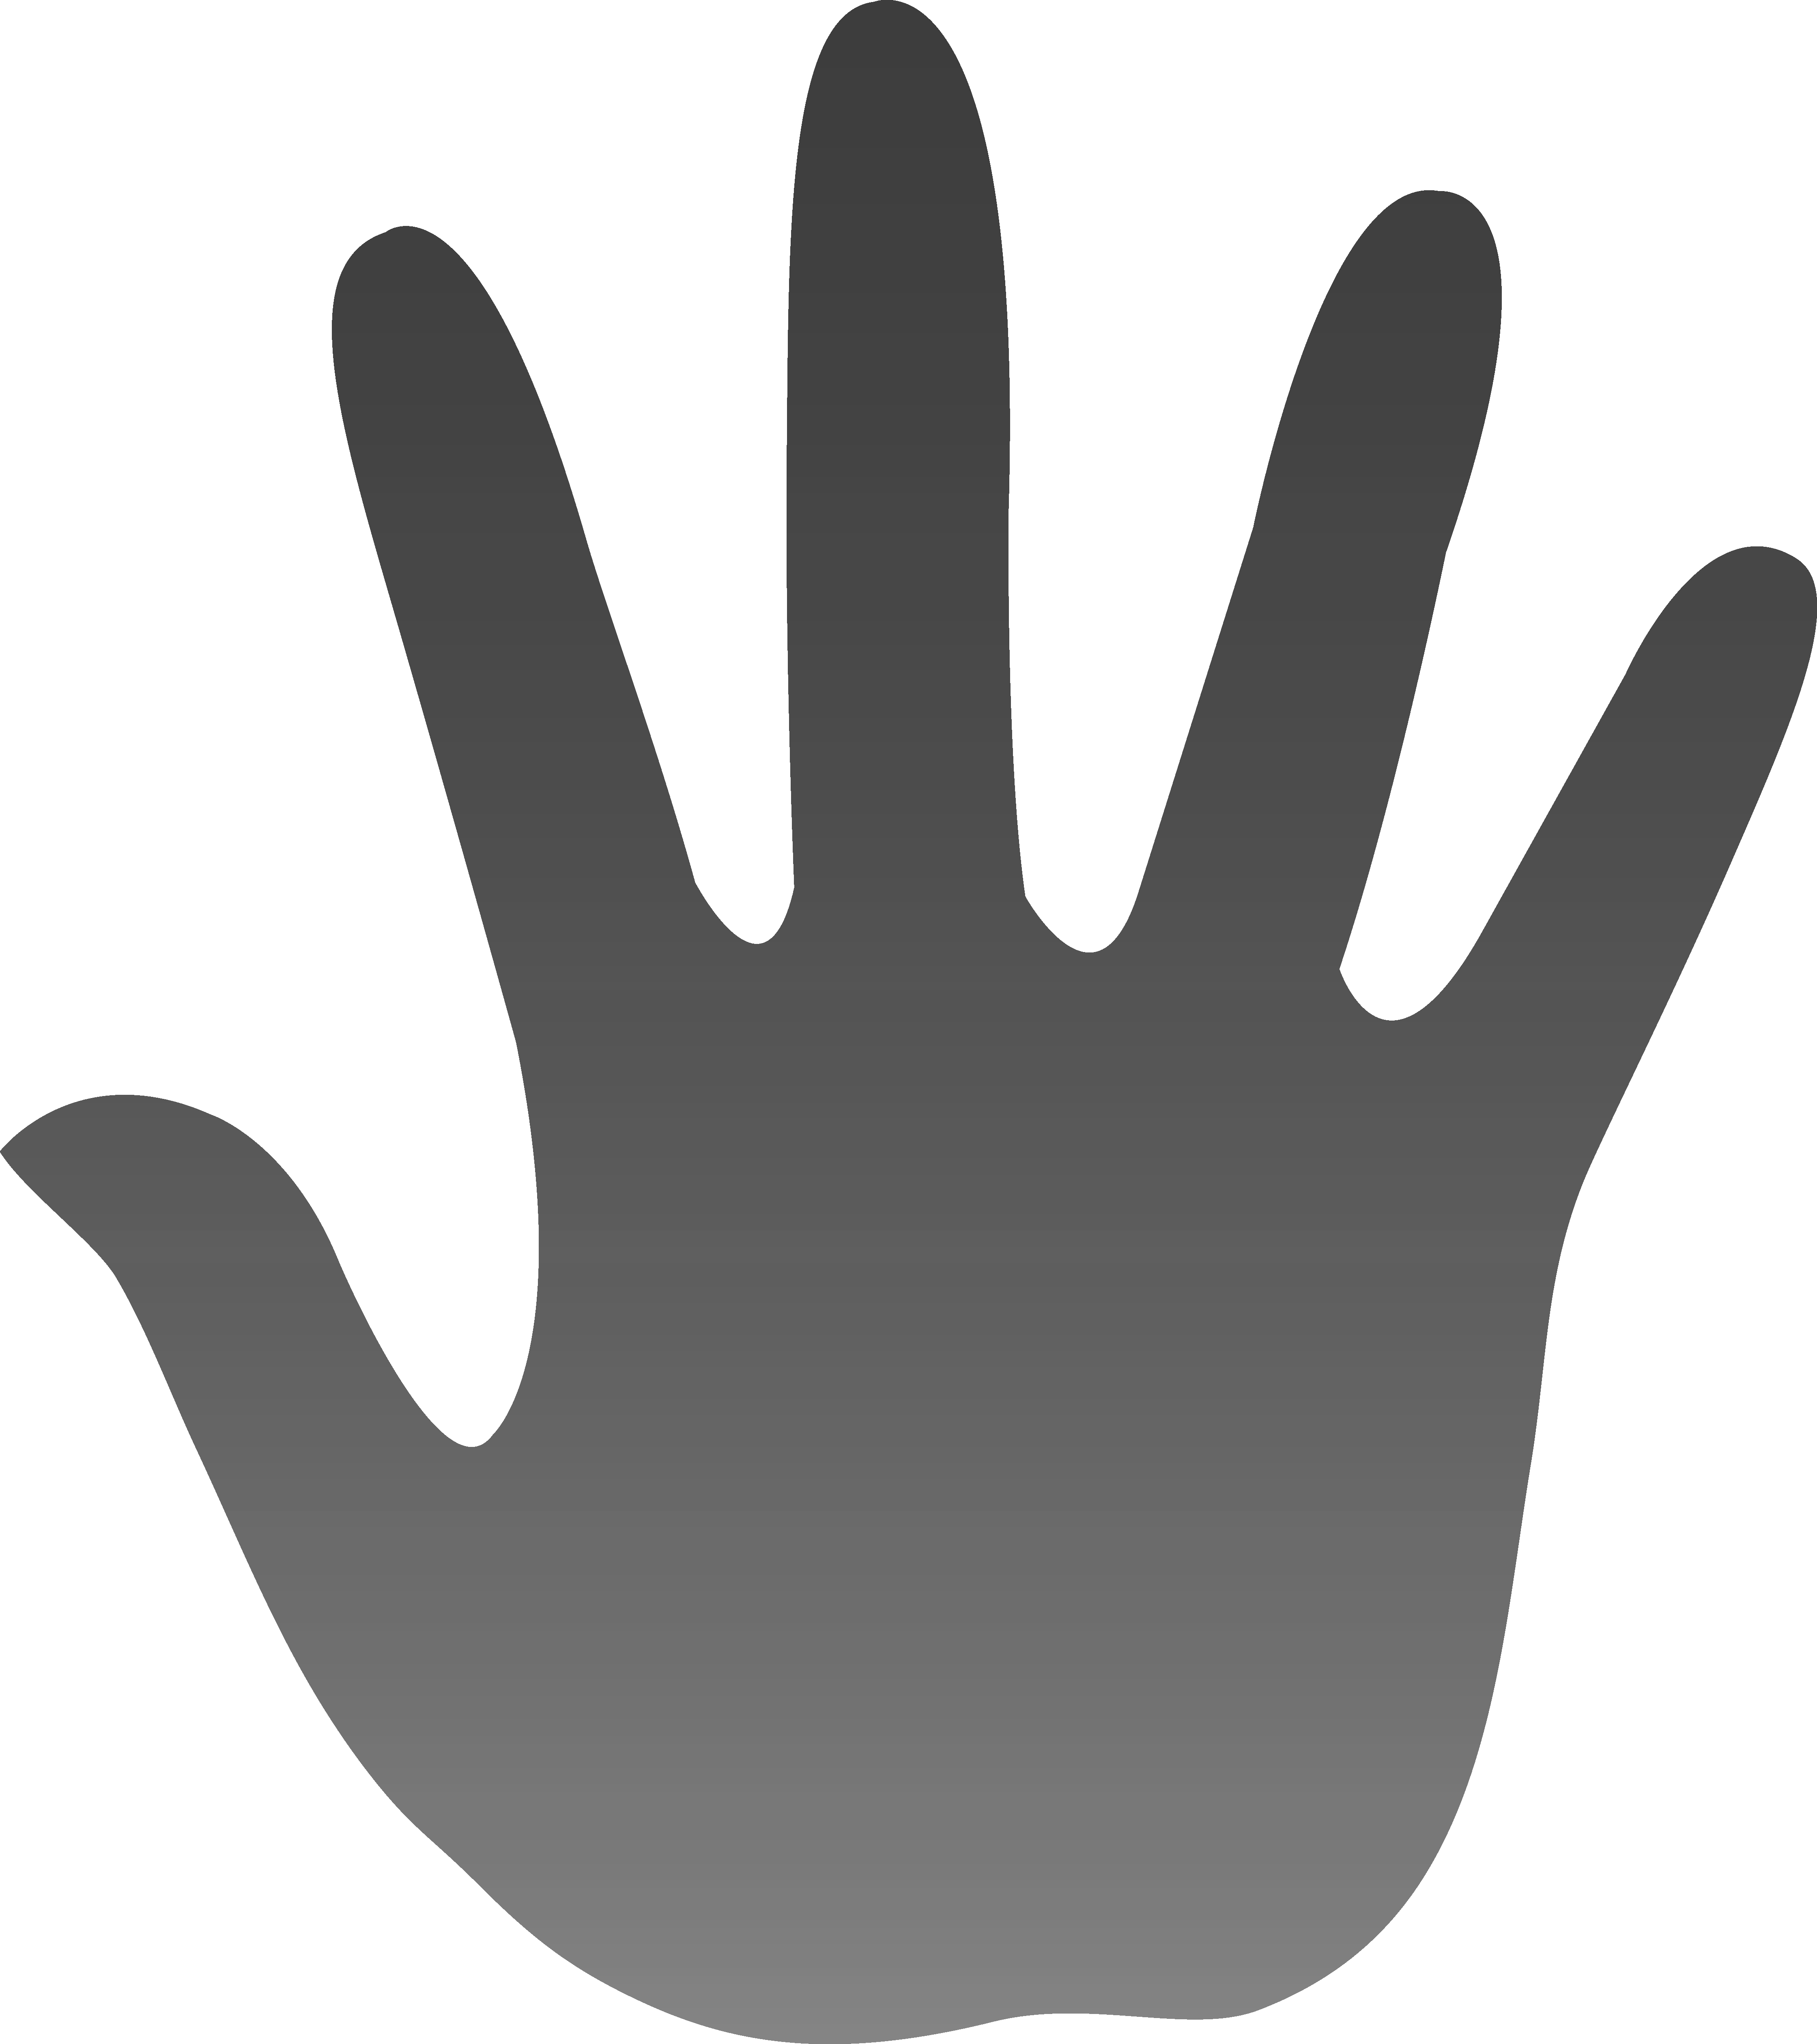 Transparent Hand Png Vector : Receive vector and graphics resources updates in your inbox.